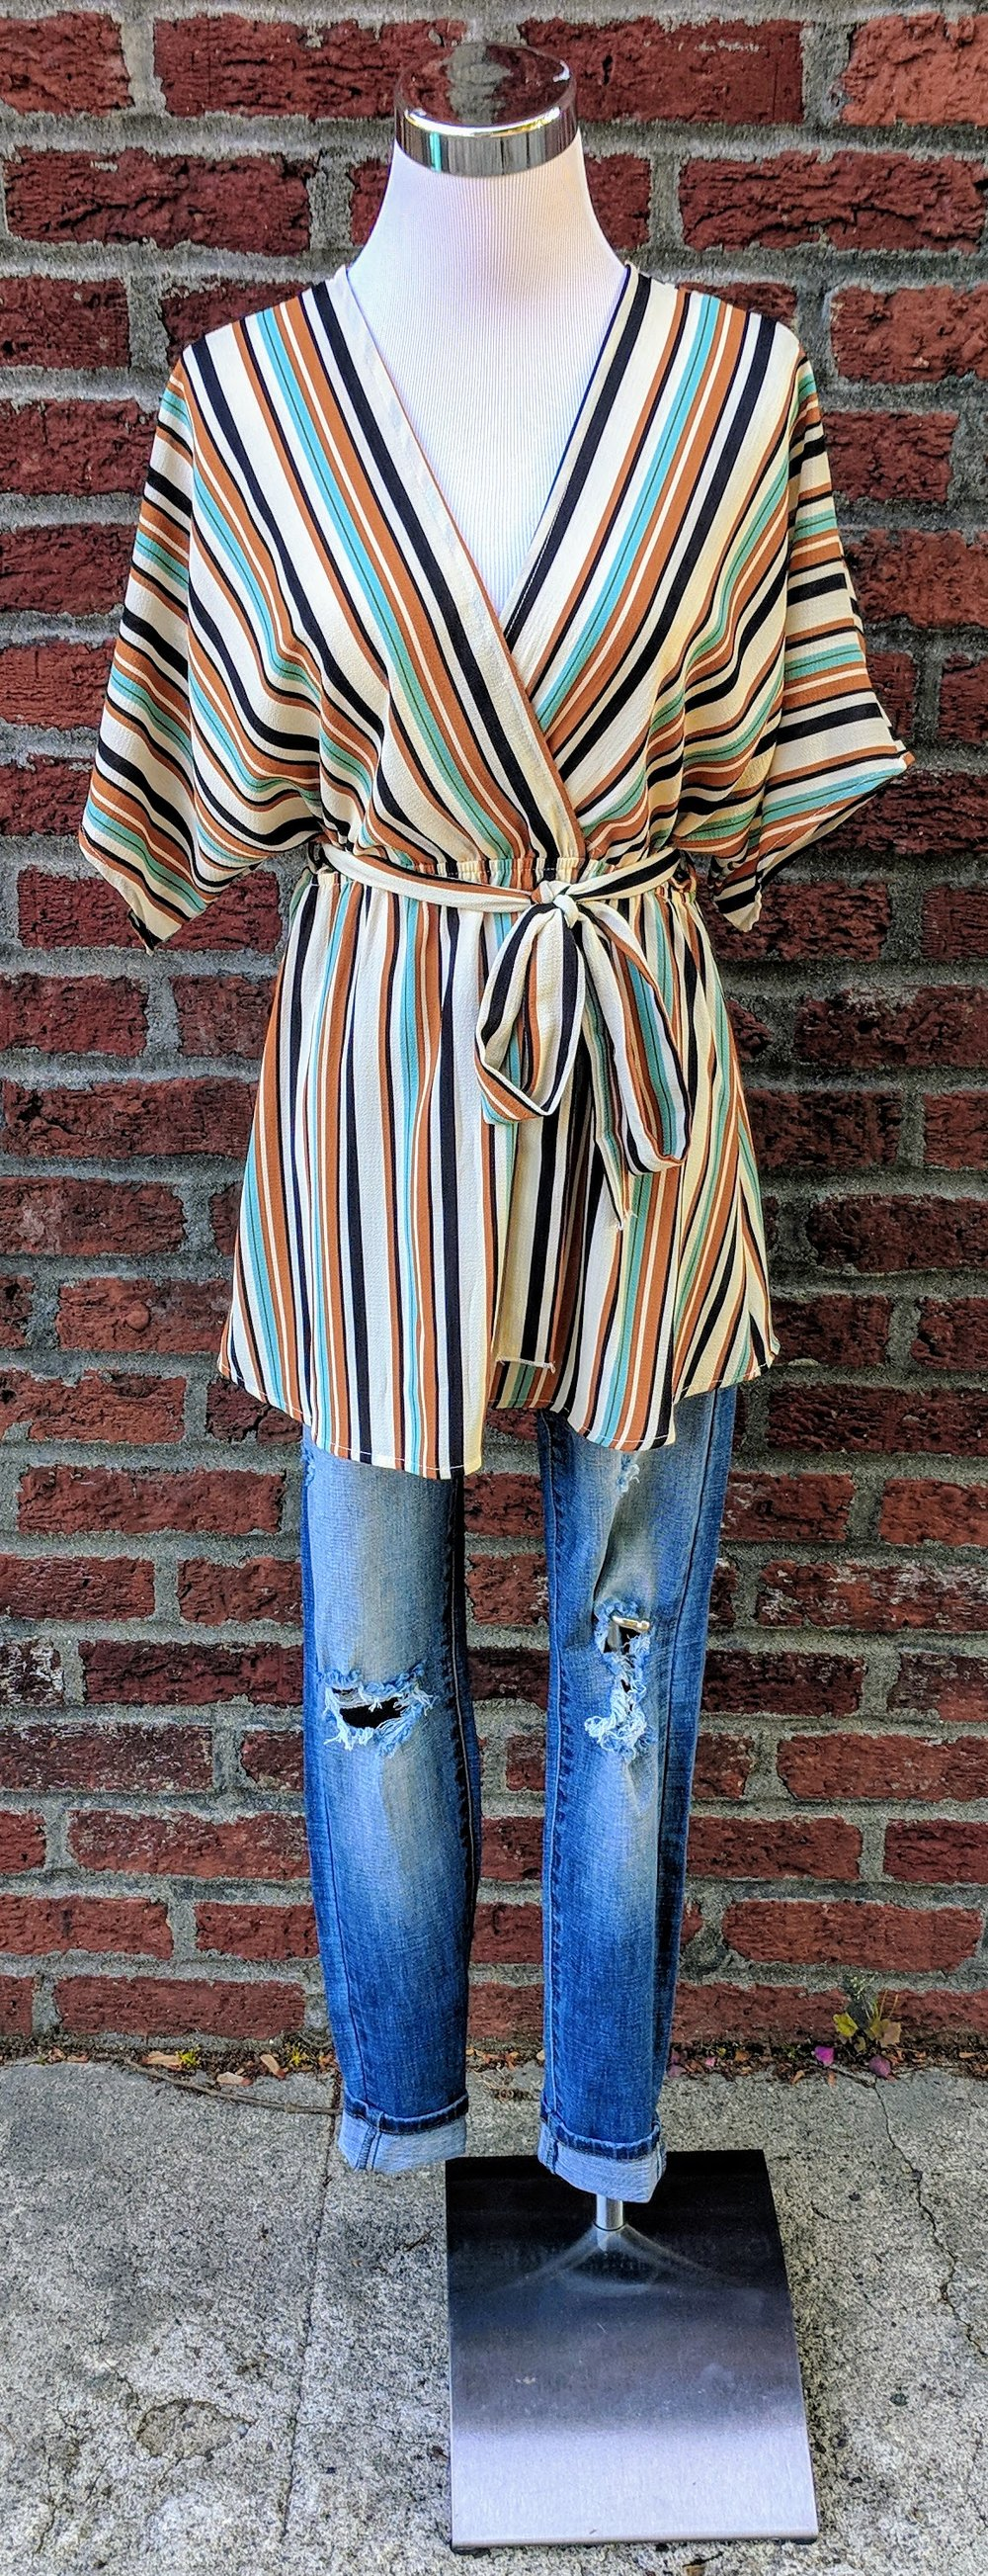 Multi-color stripe dolman top with cinched waist and tie detail.